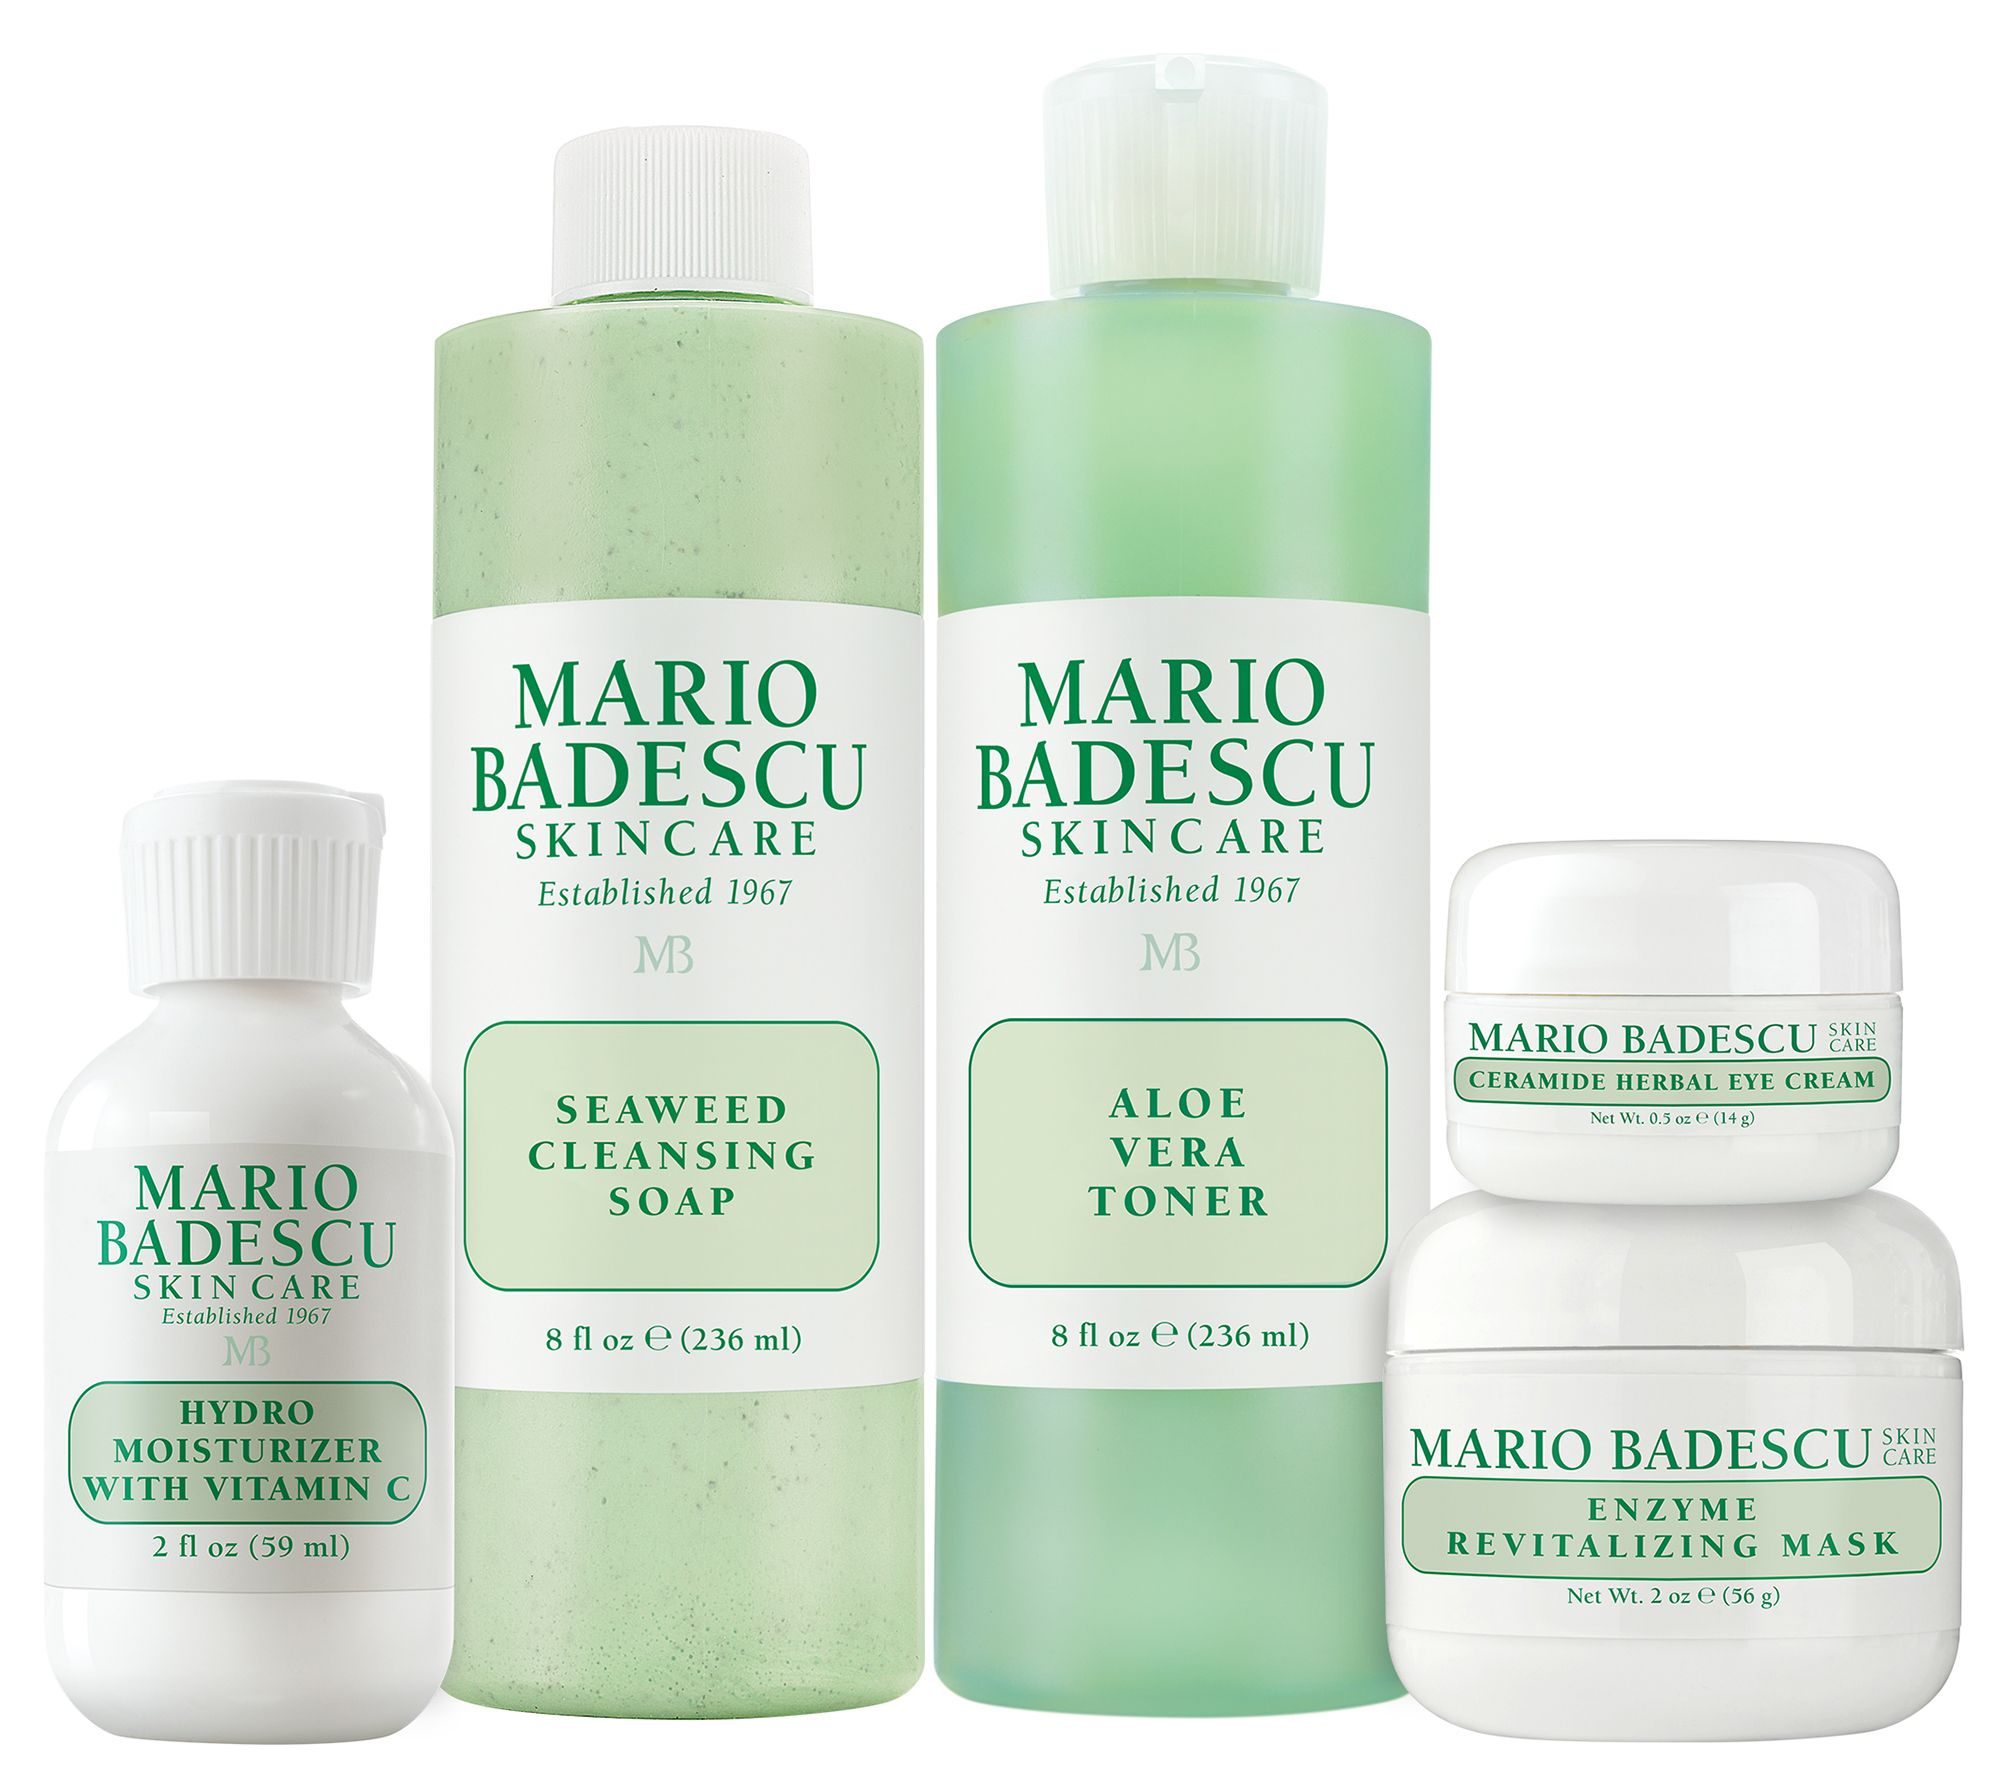 Glycolic Foaming Cleanser by mario badescu #4